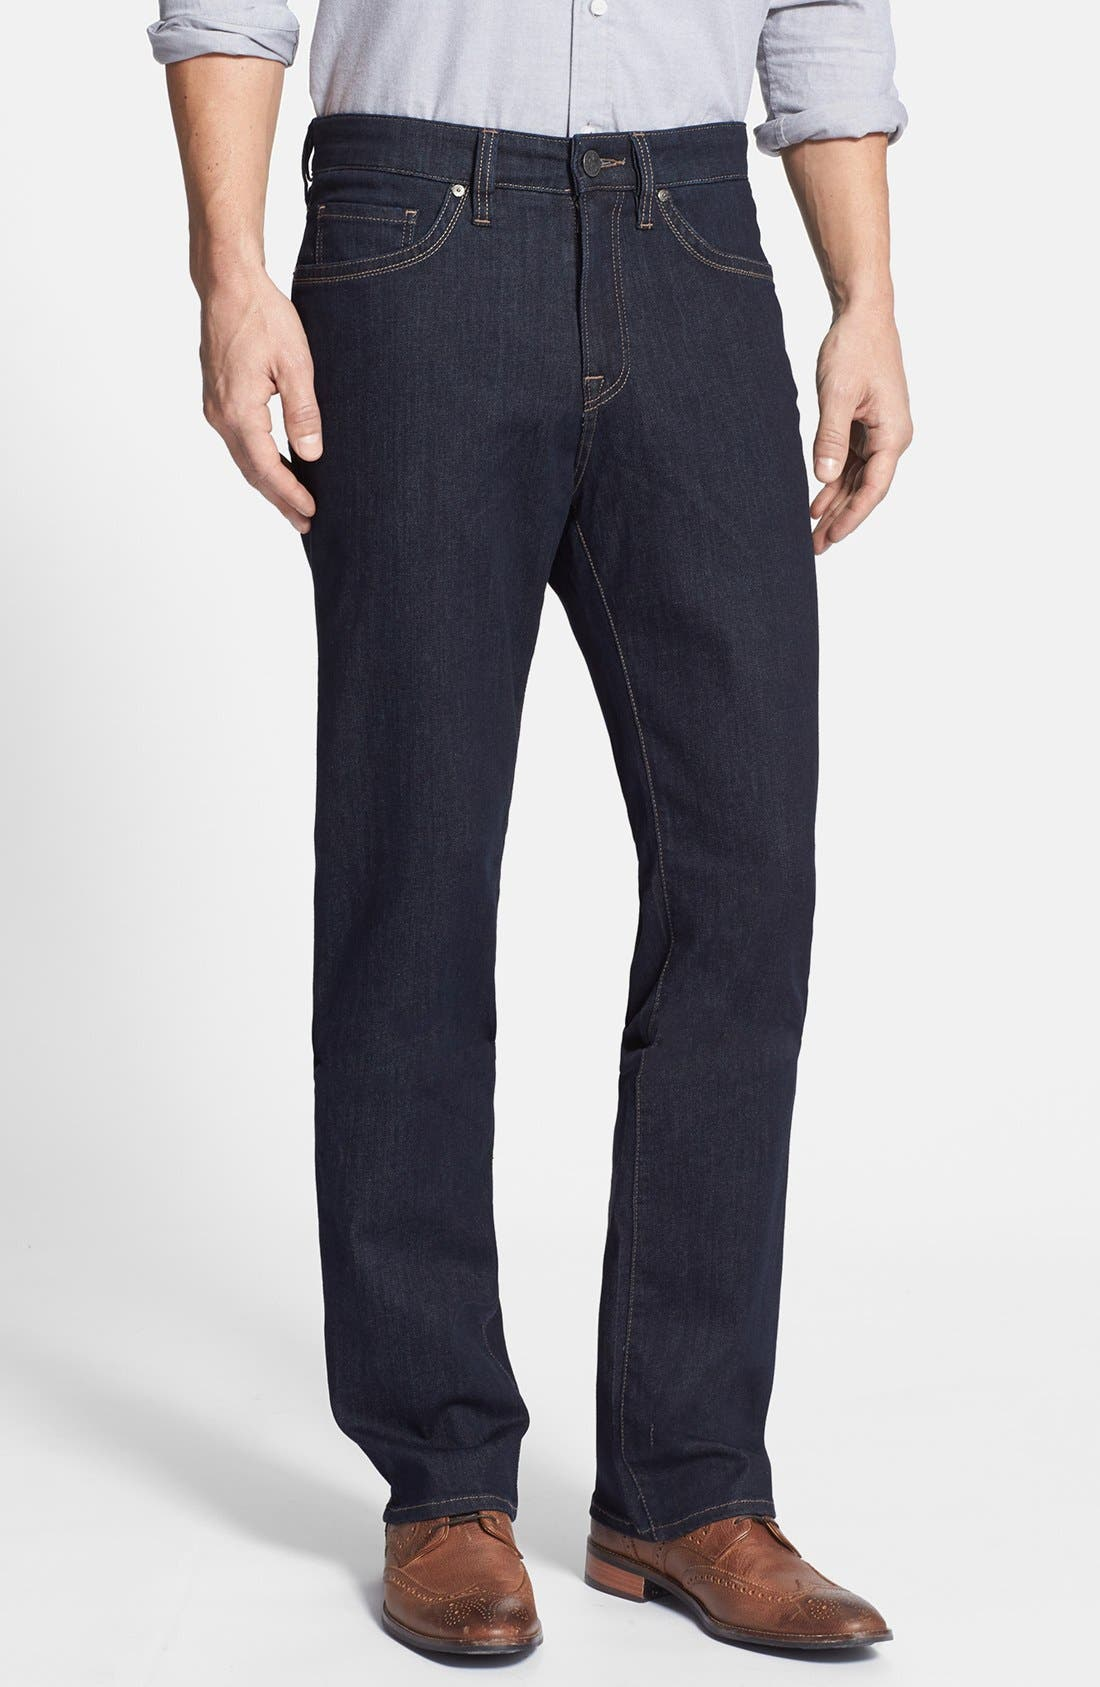 34 Heritage 'Charisma' Classic Relaxed Fit Jeans (Midnight Cashmere) (Regular & Tall)